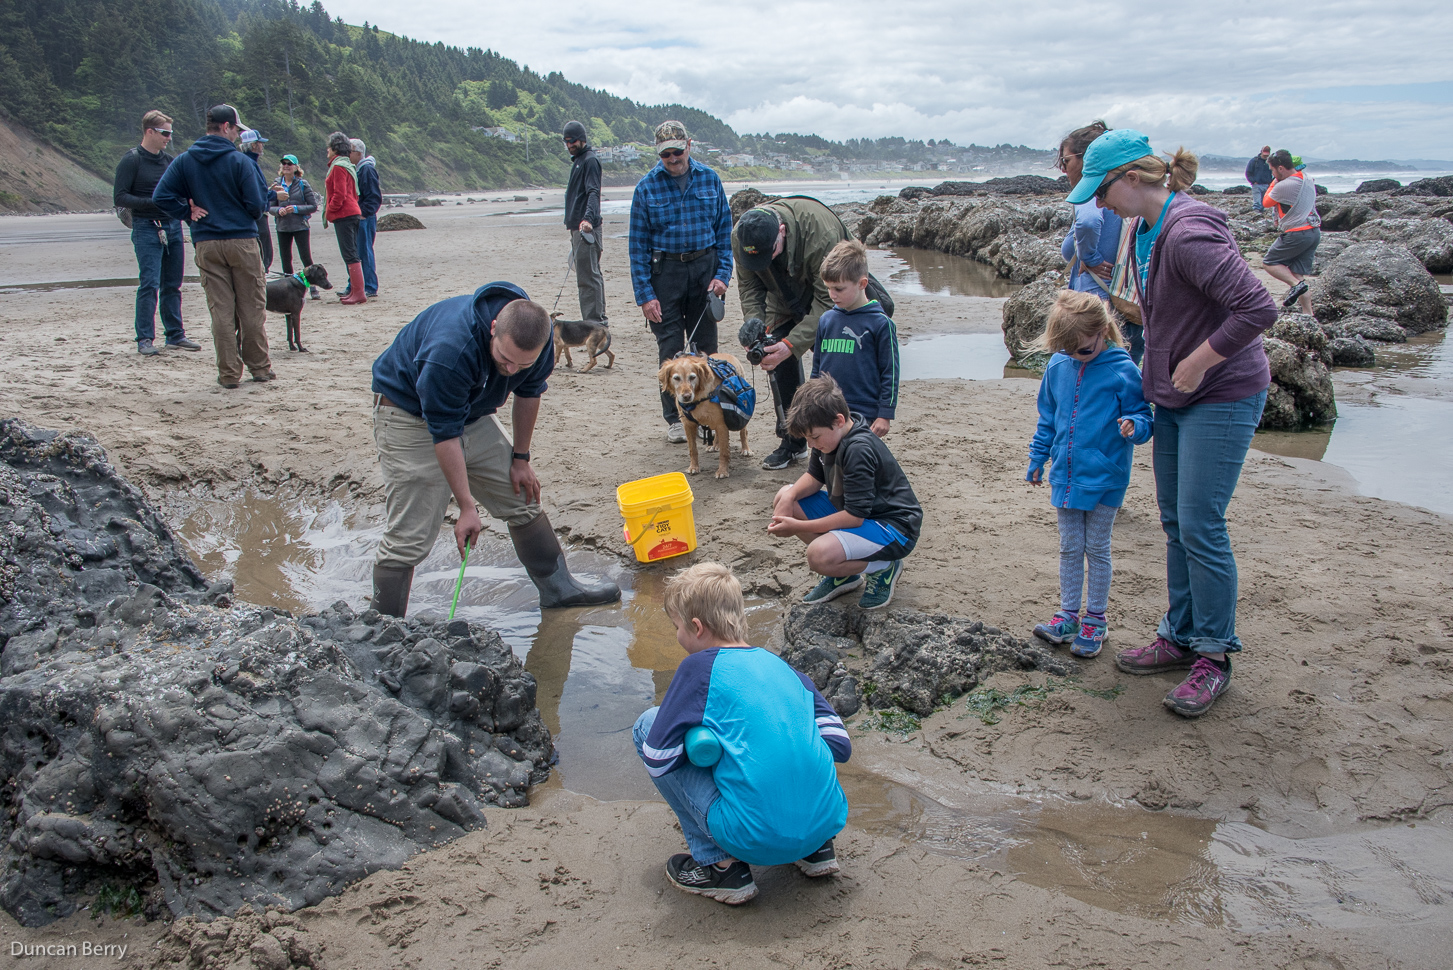 the vibrant human communities of Otis and Lincoln City, Oregon